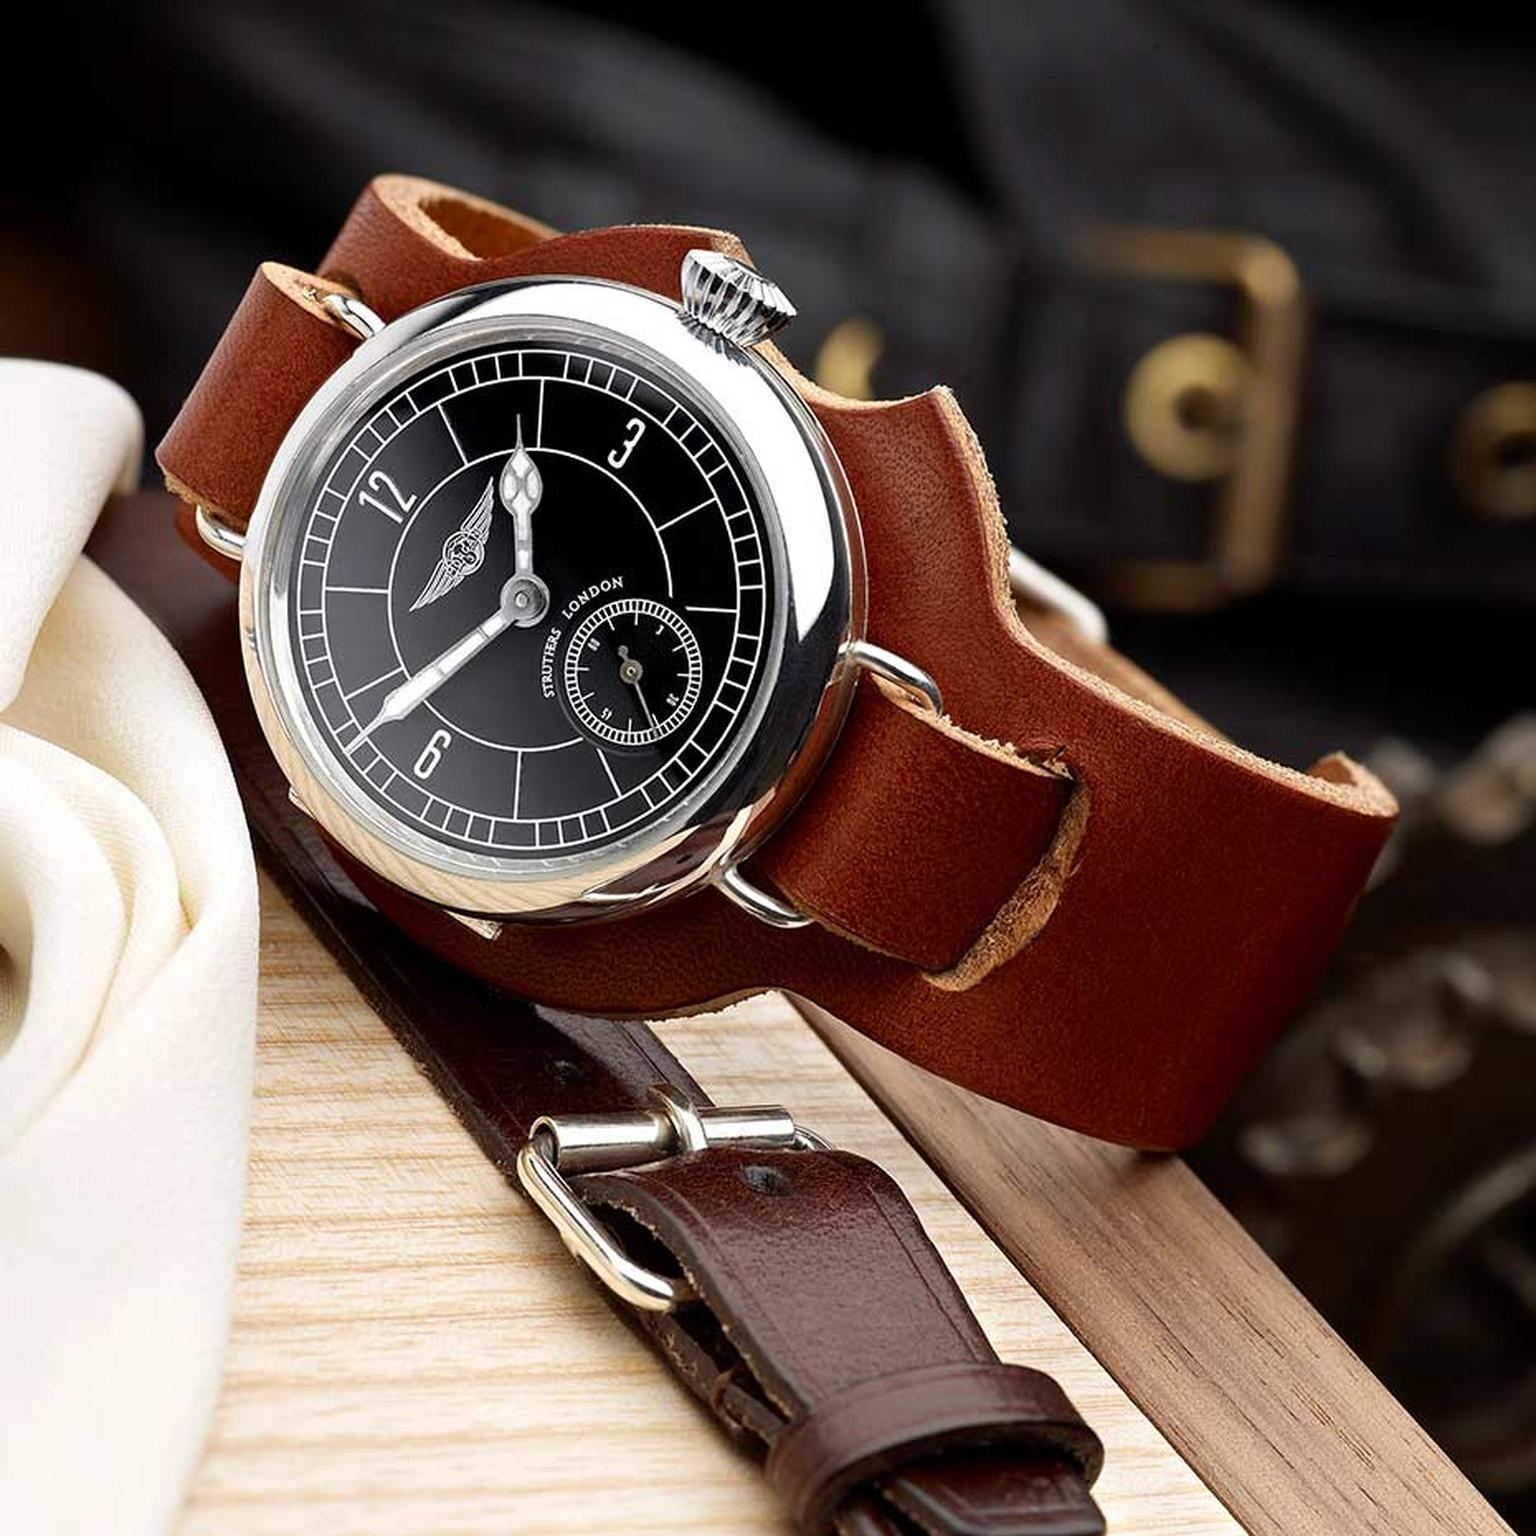 Struthers London for Morgan watches stay true to Morgan's heritage and details such as the cars' ash wood chassis, hand-beaten paneling and zero-carbon leather upholstery, all of which are reflected in the finished watch design.